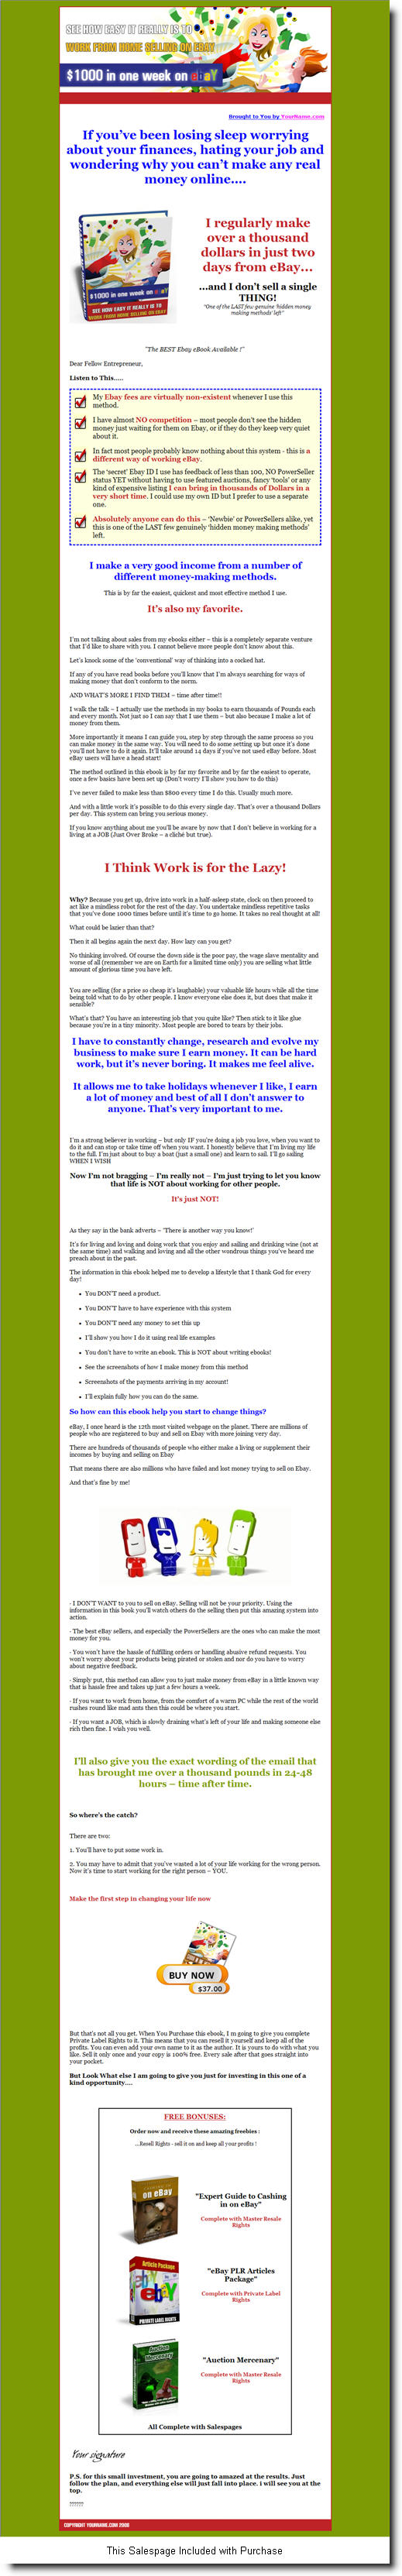 $1000 in One Week on eBay - ebook - Private Label Rights